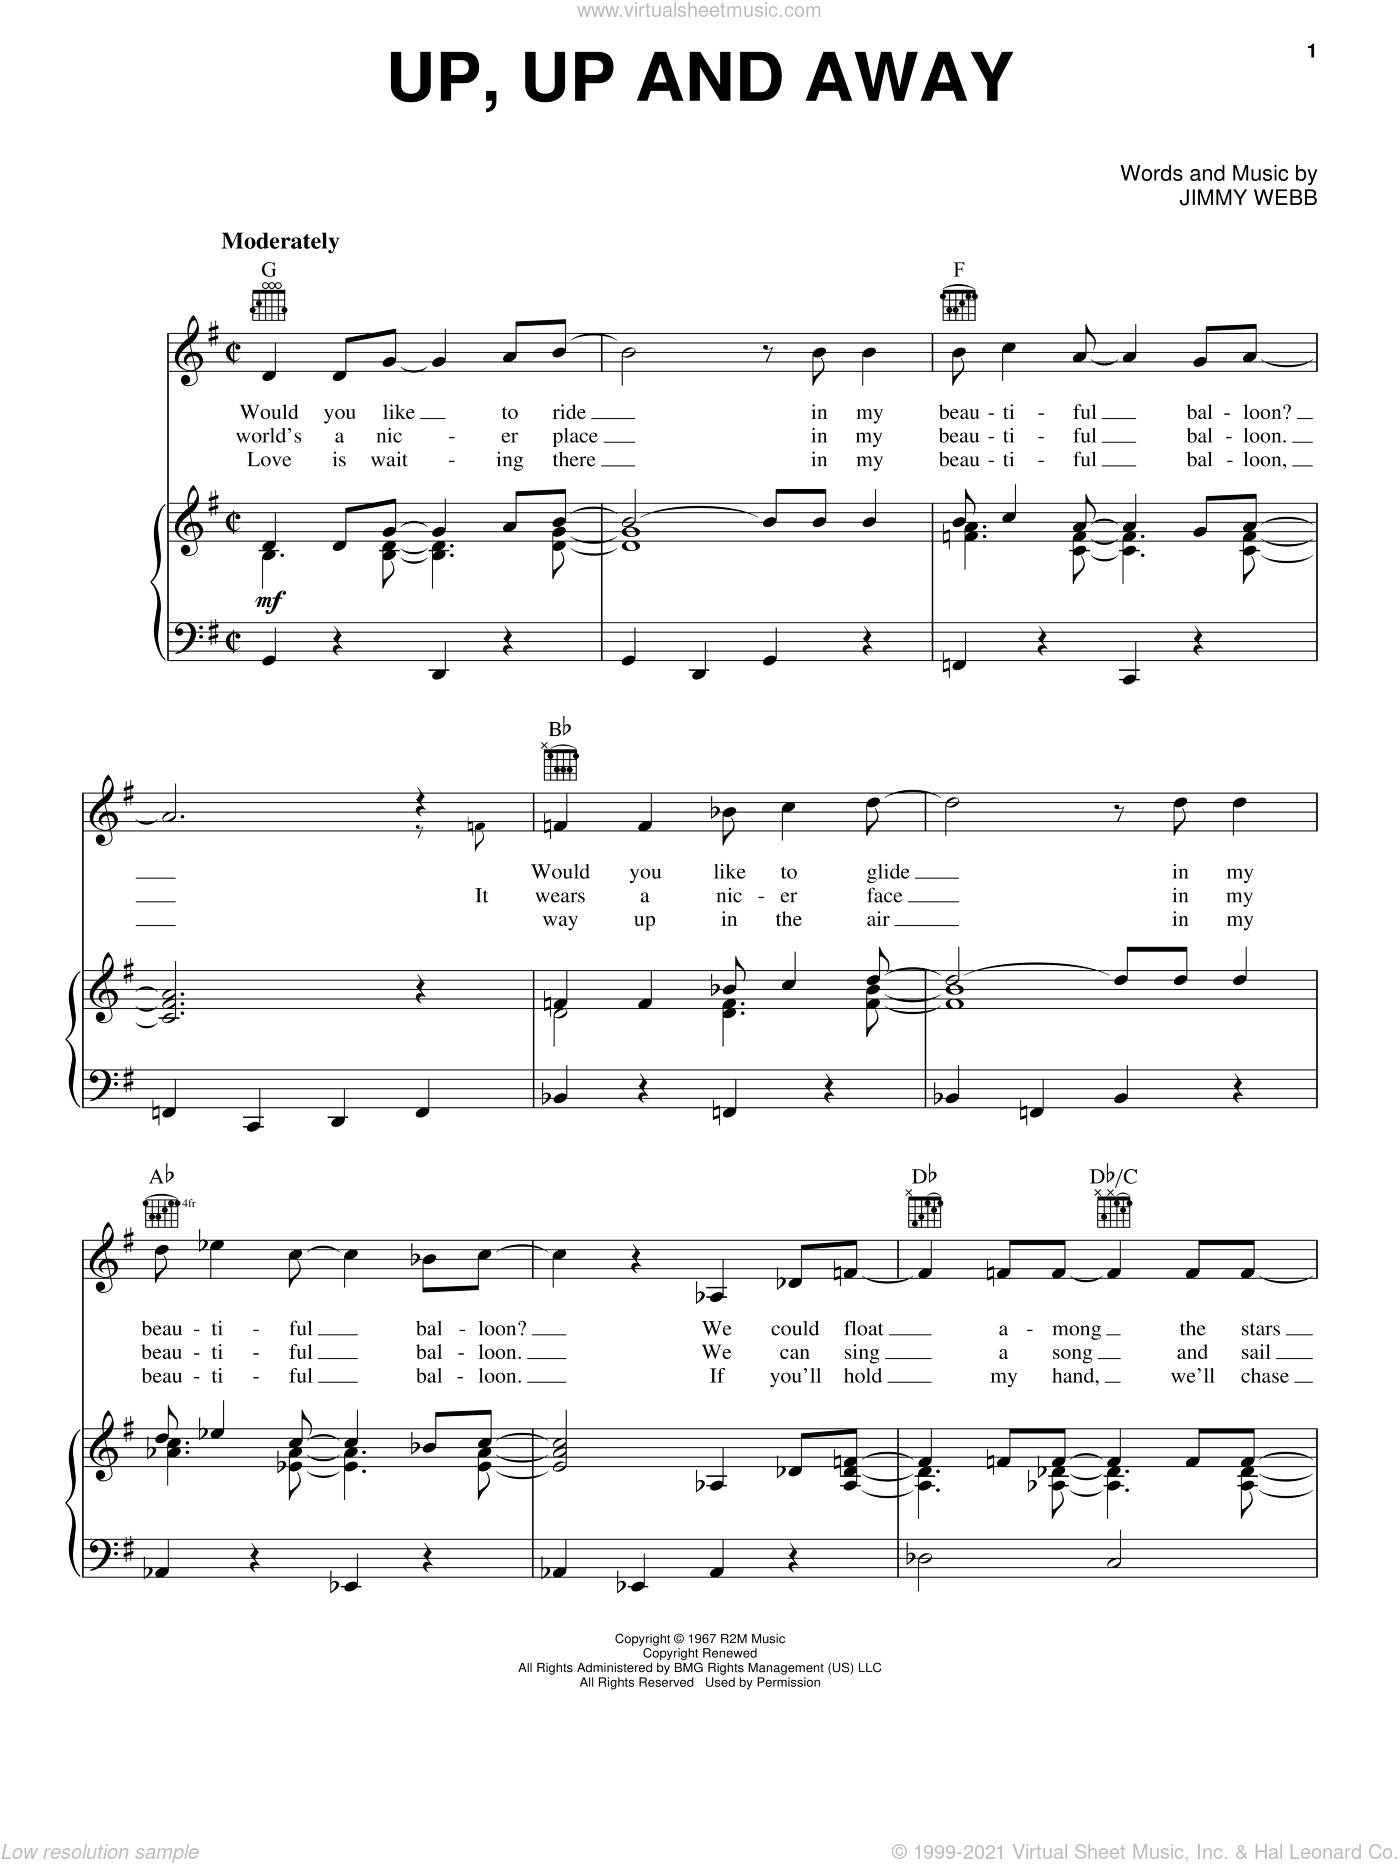 Up, Up And Away sheet music for voice, piano or guitar by The Fifth Dimension, Andy Williams, Sammy Davis, Jr. and Jimmy Webb, intermediate skill level